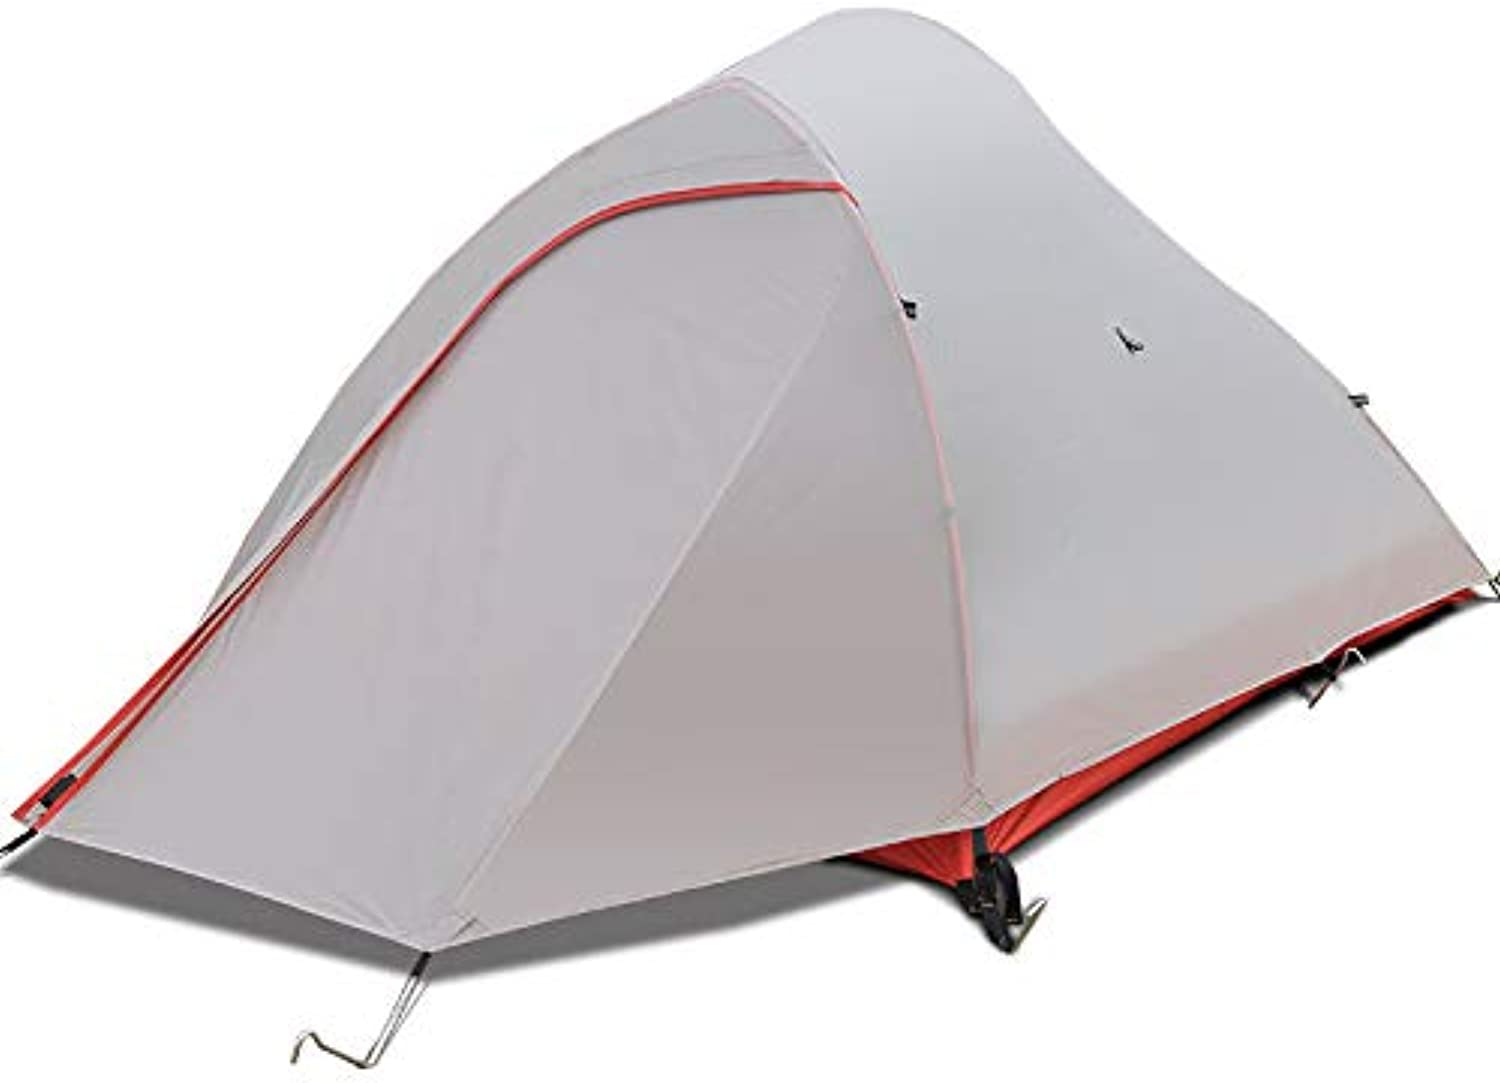 Tent. Outdoor Nylon Coated Silicon  Single Double Tent  Aluminum Pole AntiStorm Rain Field  Camping Tent